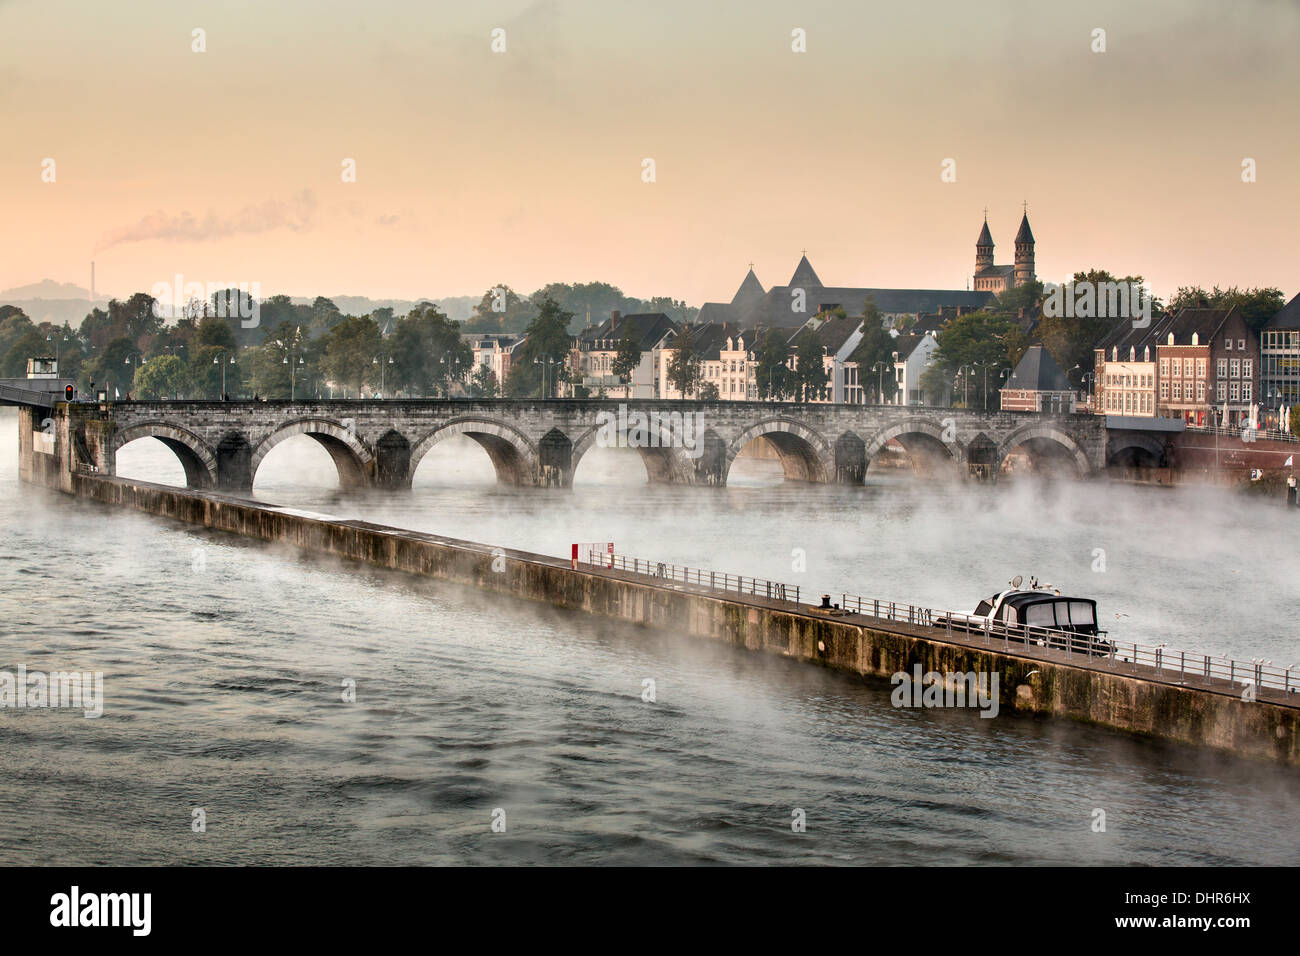 Netherlands, Maastricht, Maas or Meuse river. Bridge called Sint Servaas. Roof of church in background digitally Stock Photo